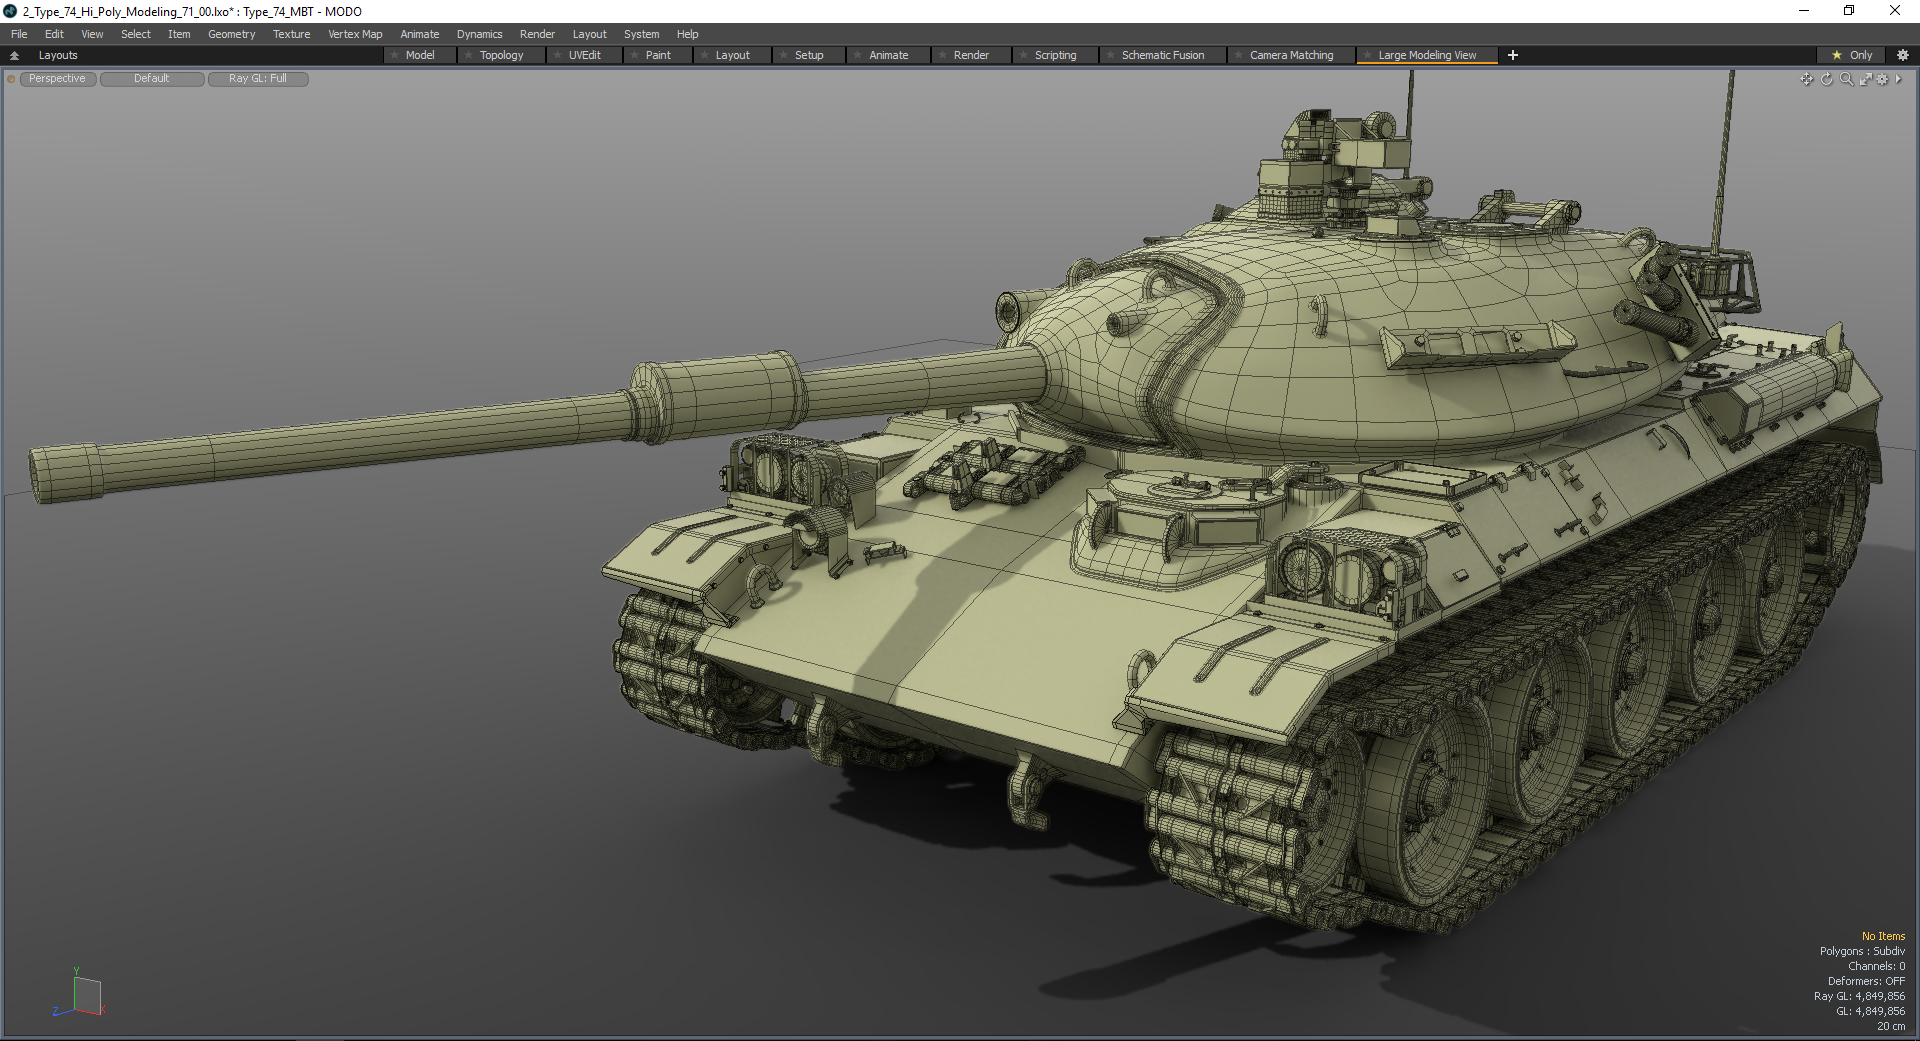 type_74_71hours_modeling_07